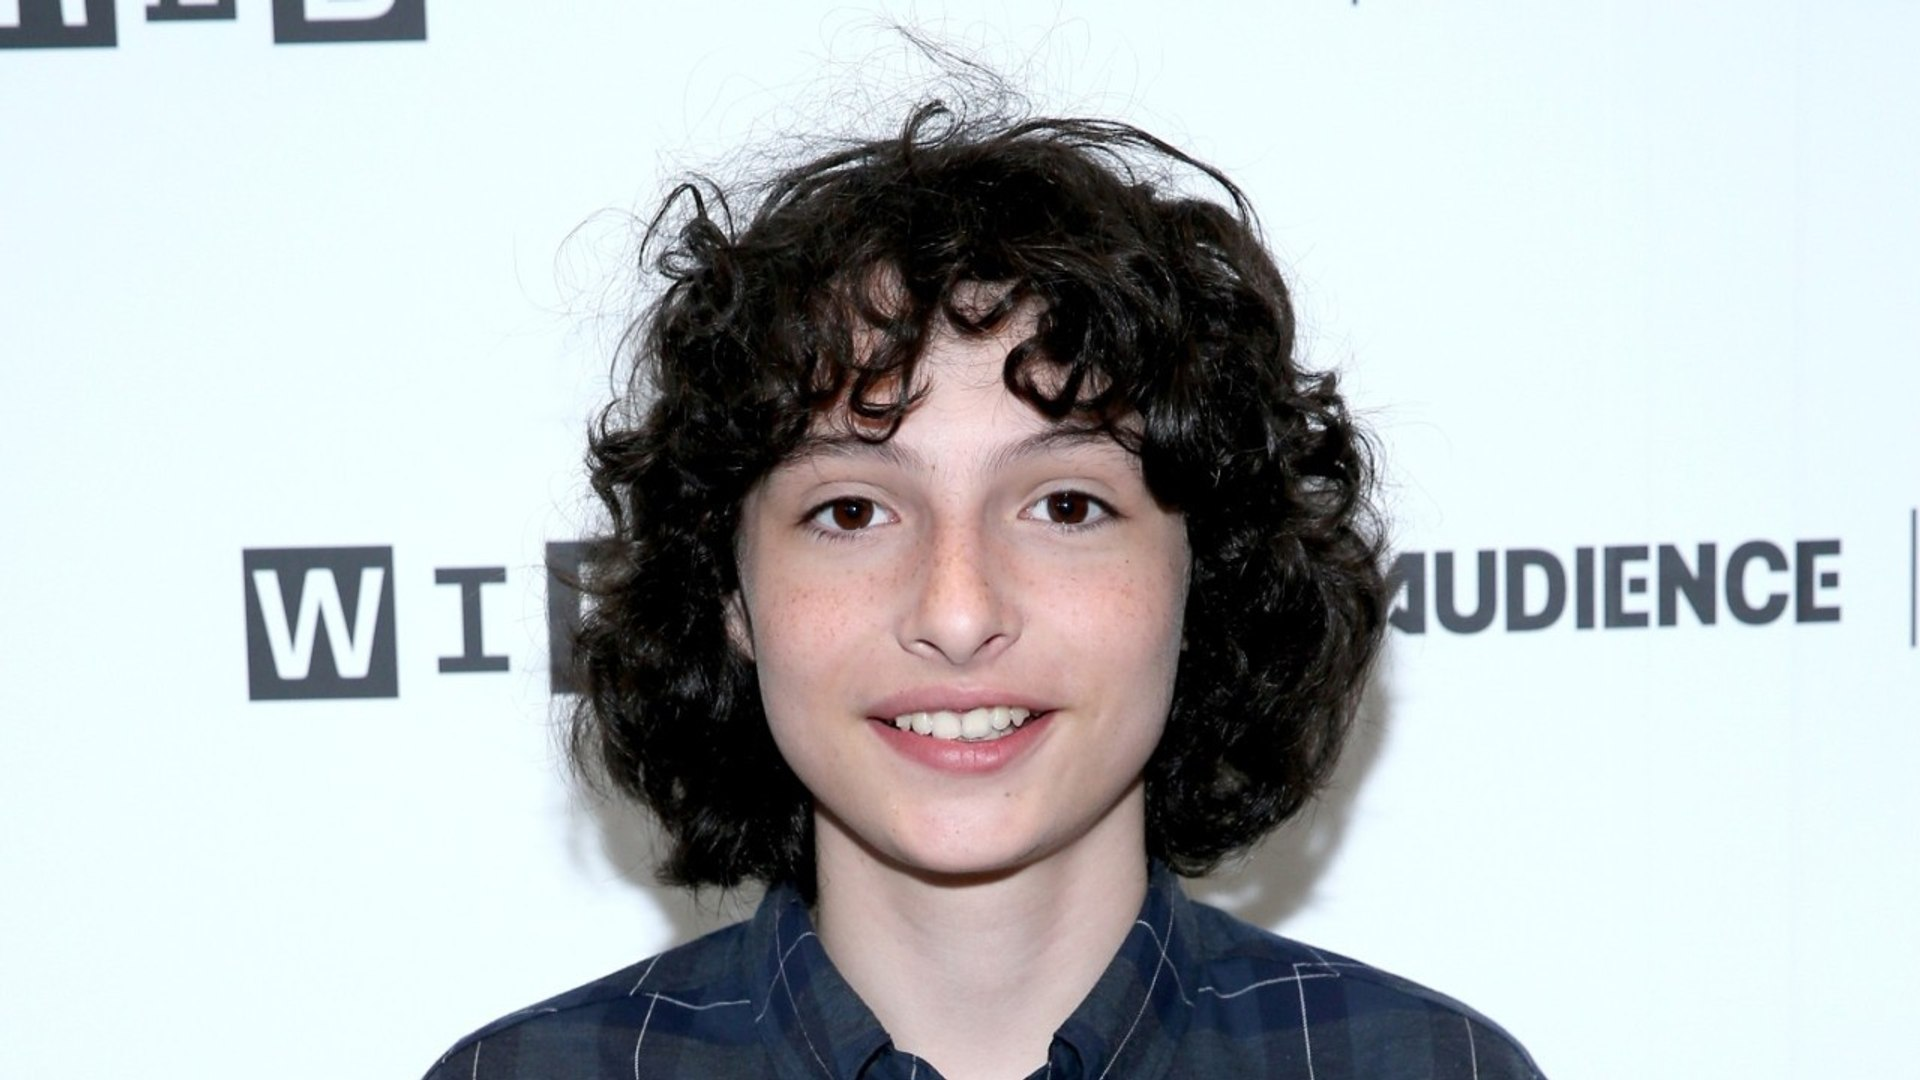 'Stranger Things' Star's Agent Accused of Sexual Assault